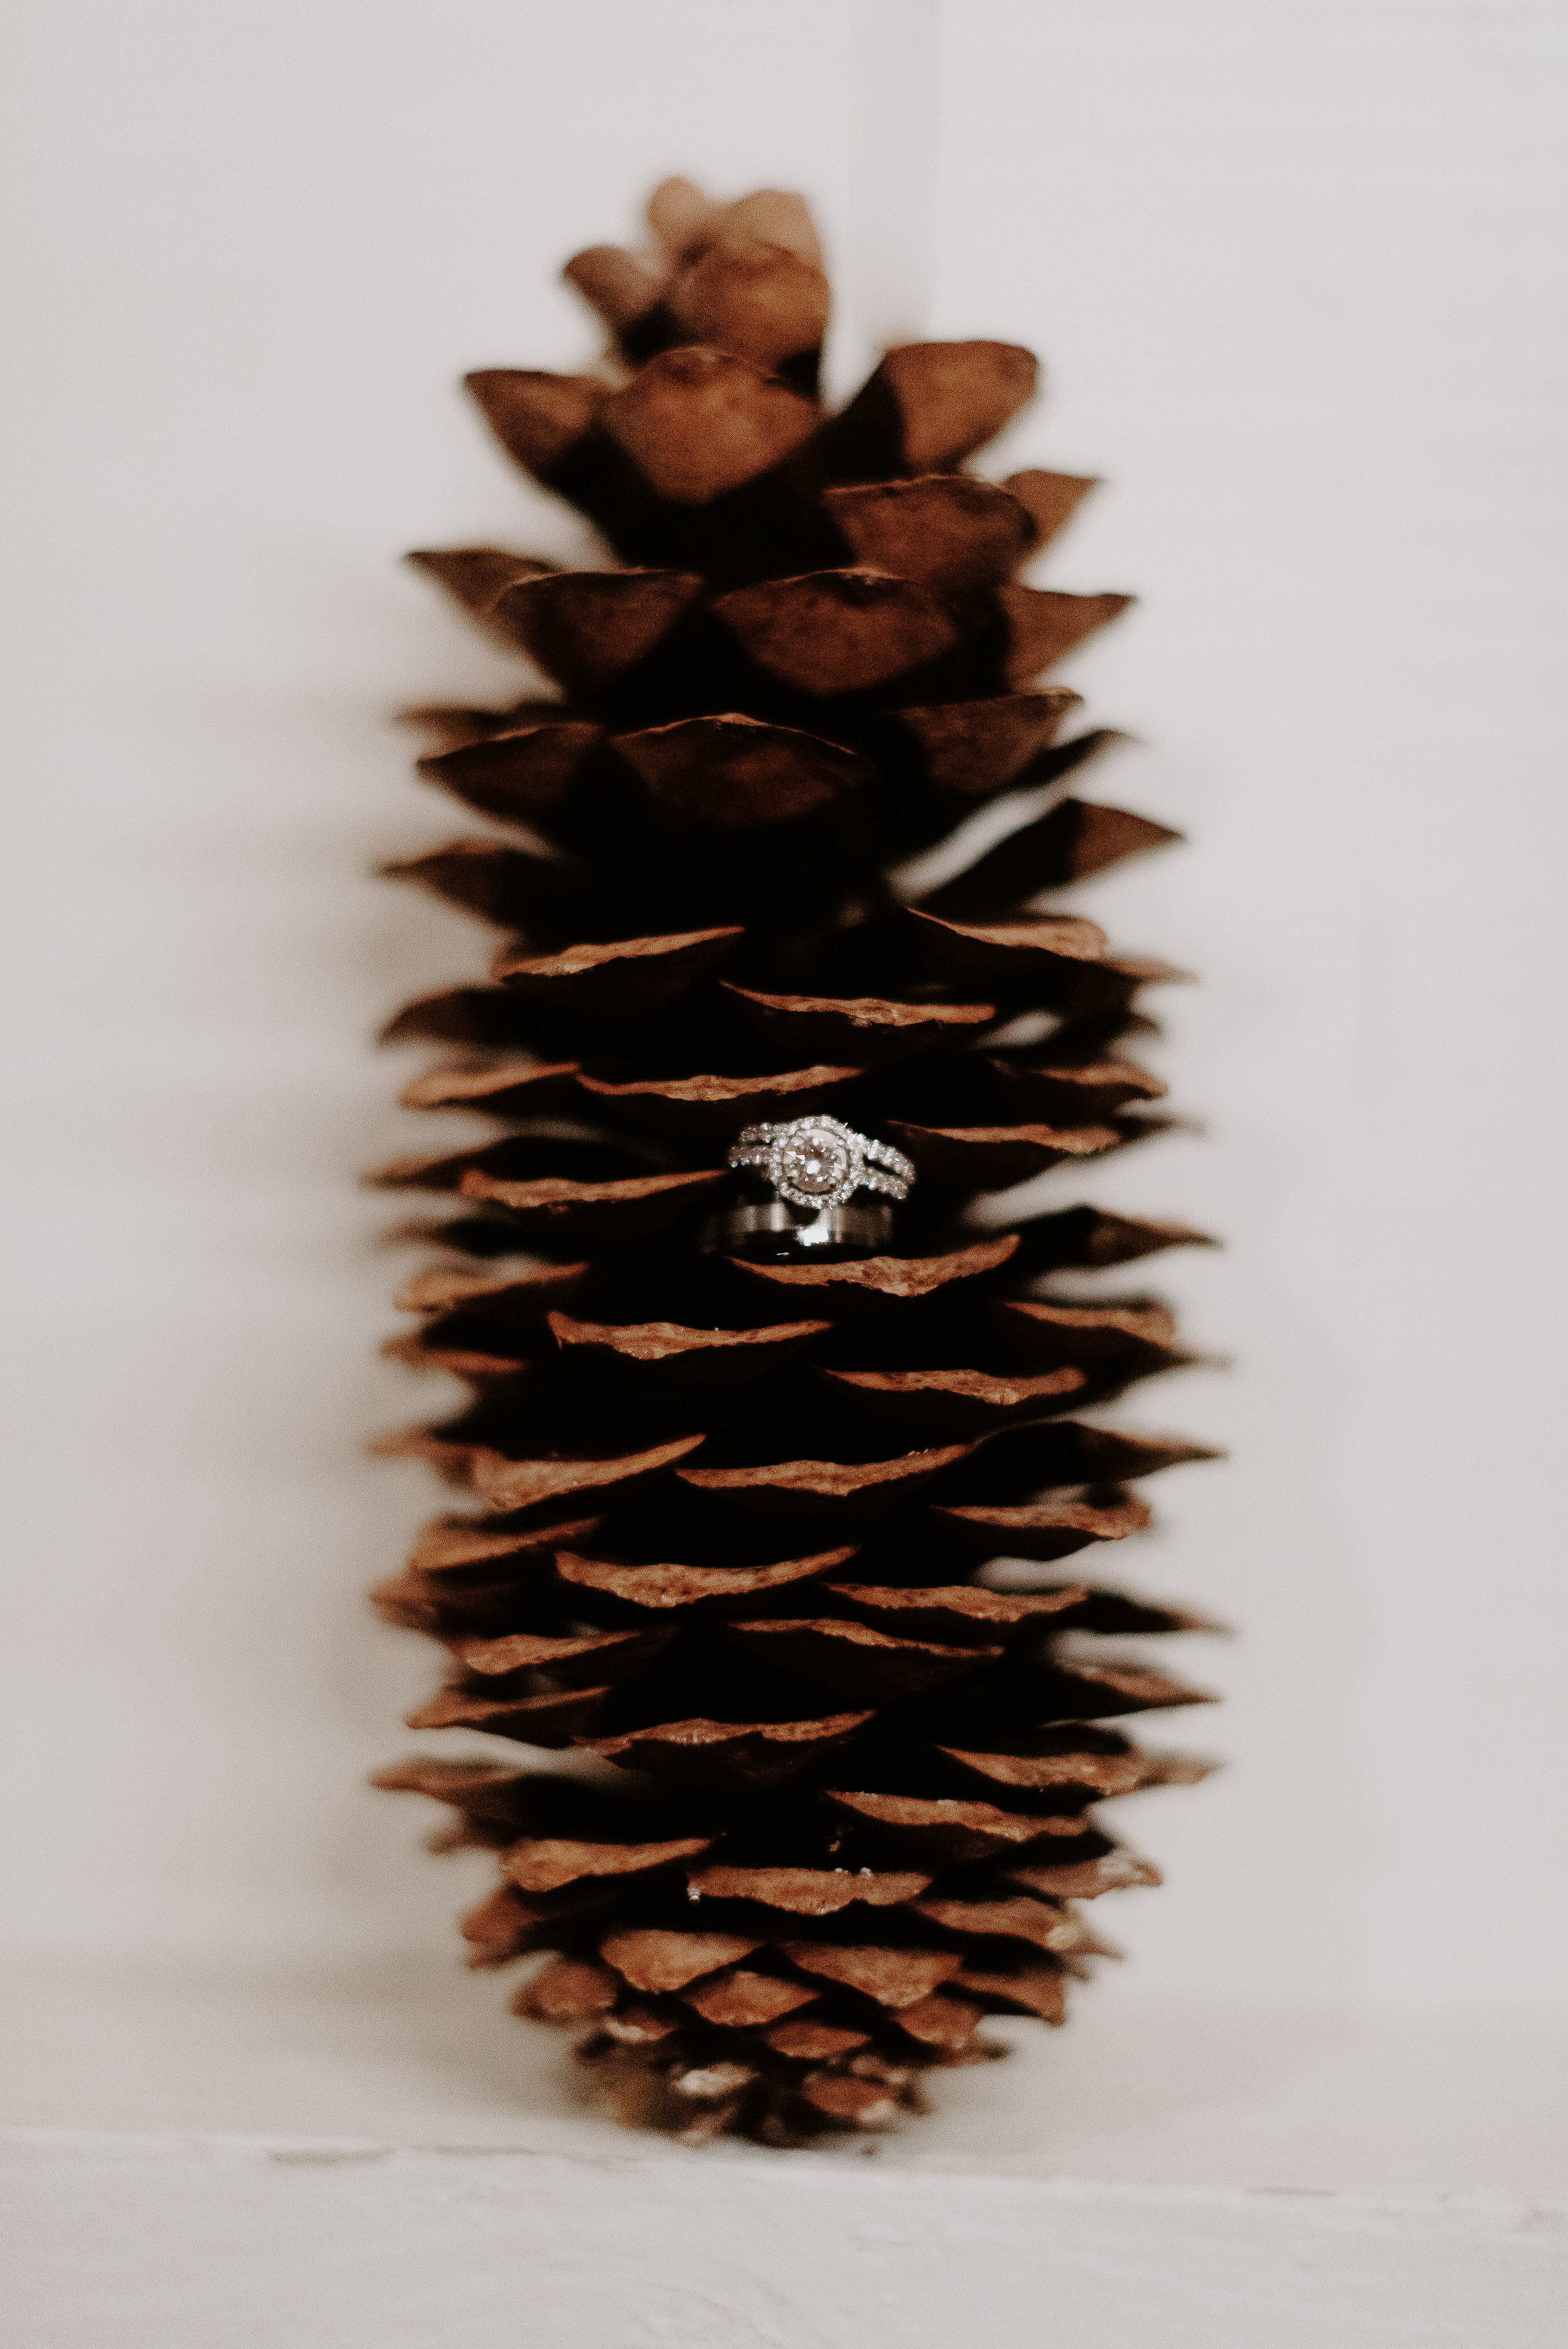 Wedding rings sitting on a pine cone